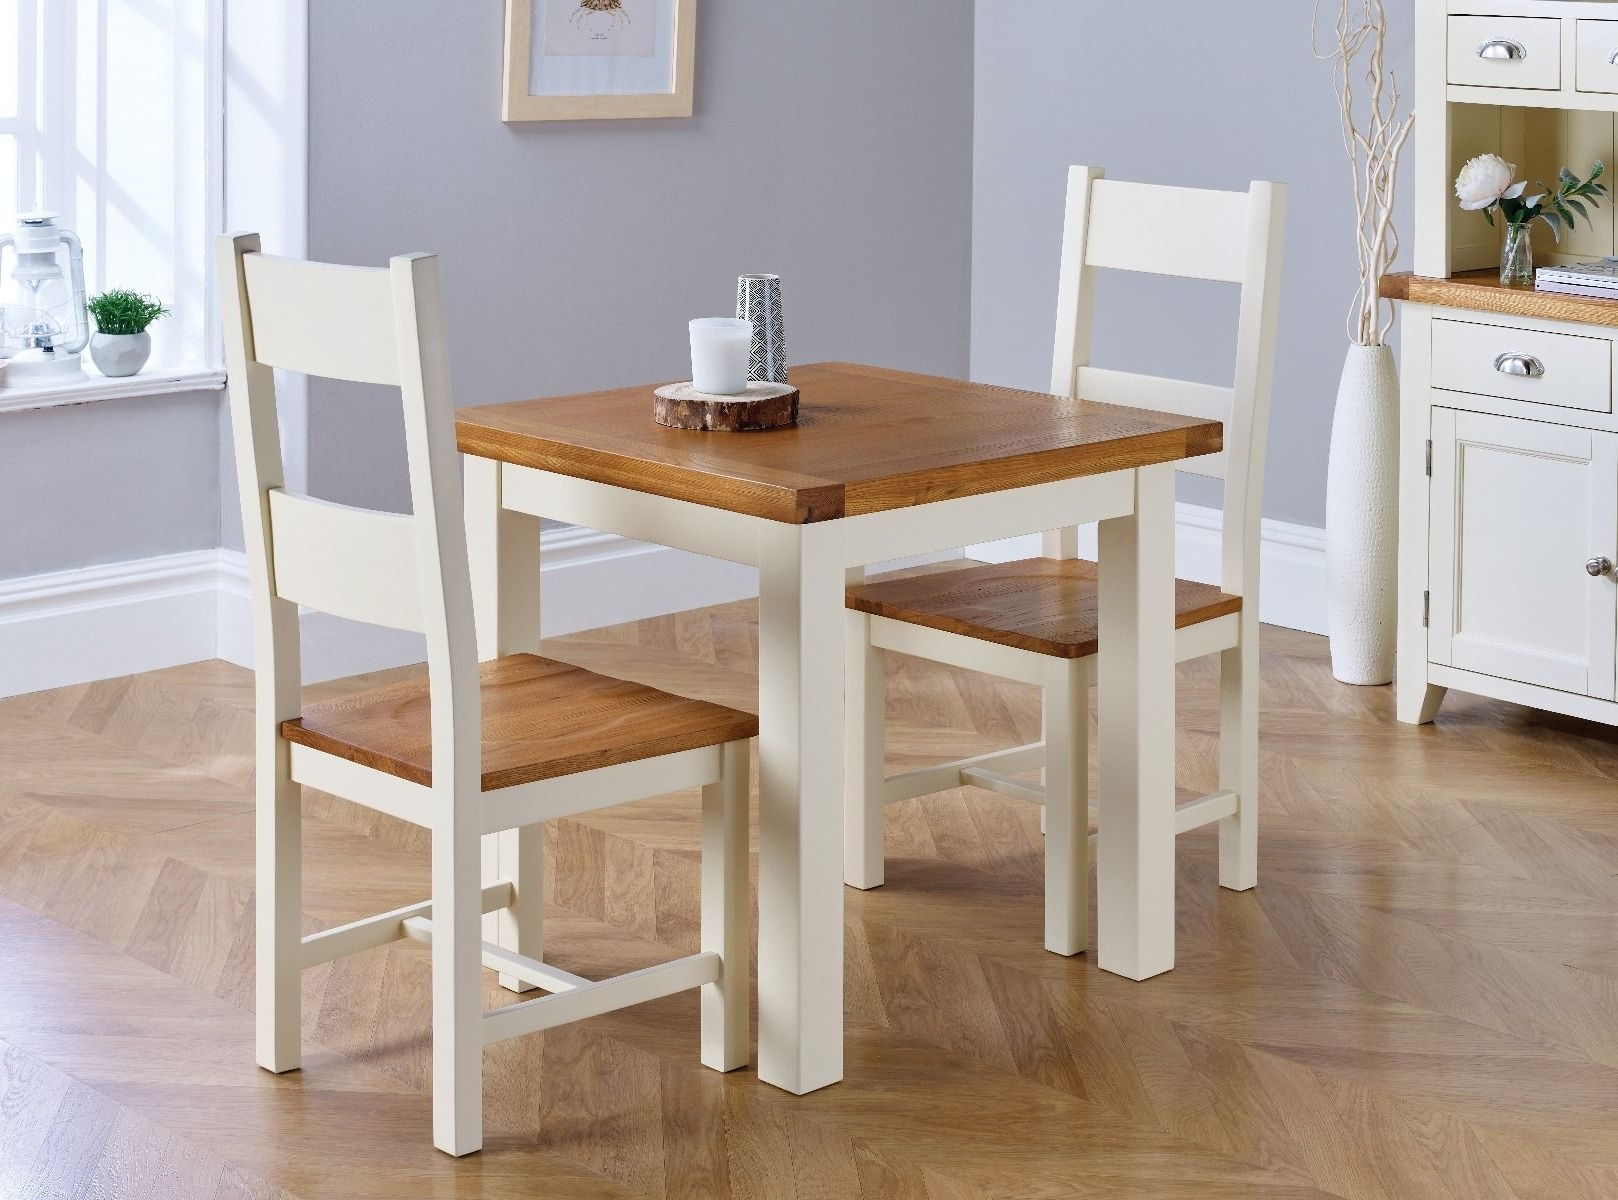 Cream And Oak Dining Tables Intended For Famous Small Cream Painted Square Oak Dining Table – Free Delivery (View 6 of 25)